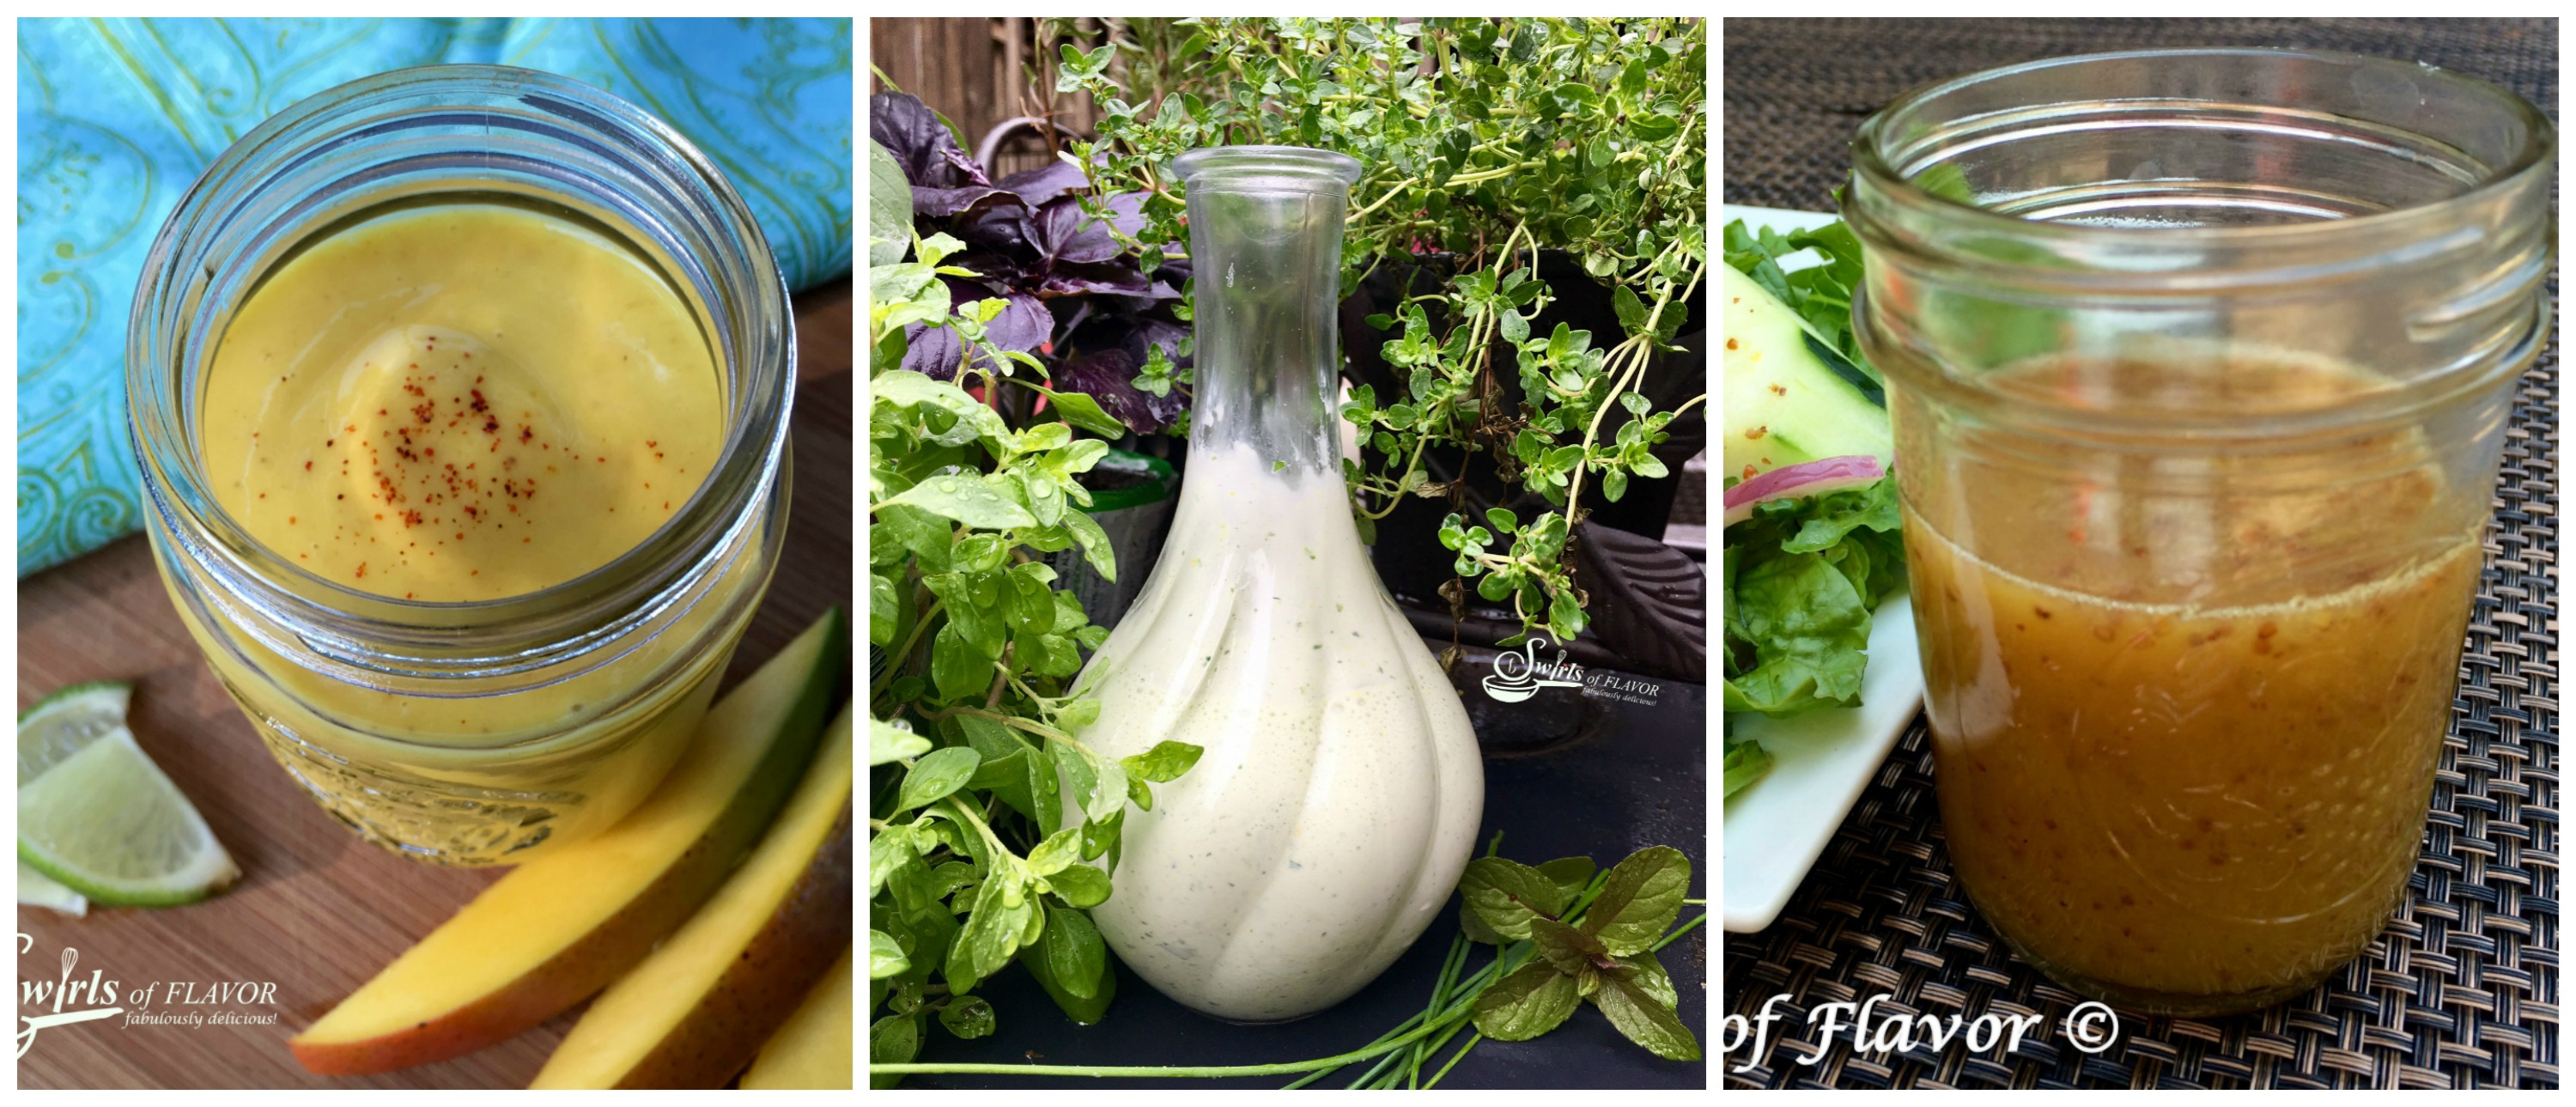 Chipotle Mango Salad Dressing, Green Goddess Salad Dressing and Honey Mustard Salad Dressing